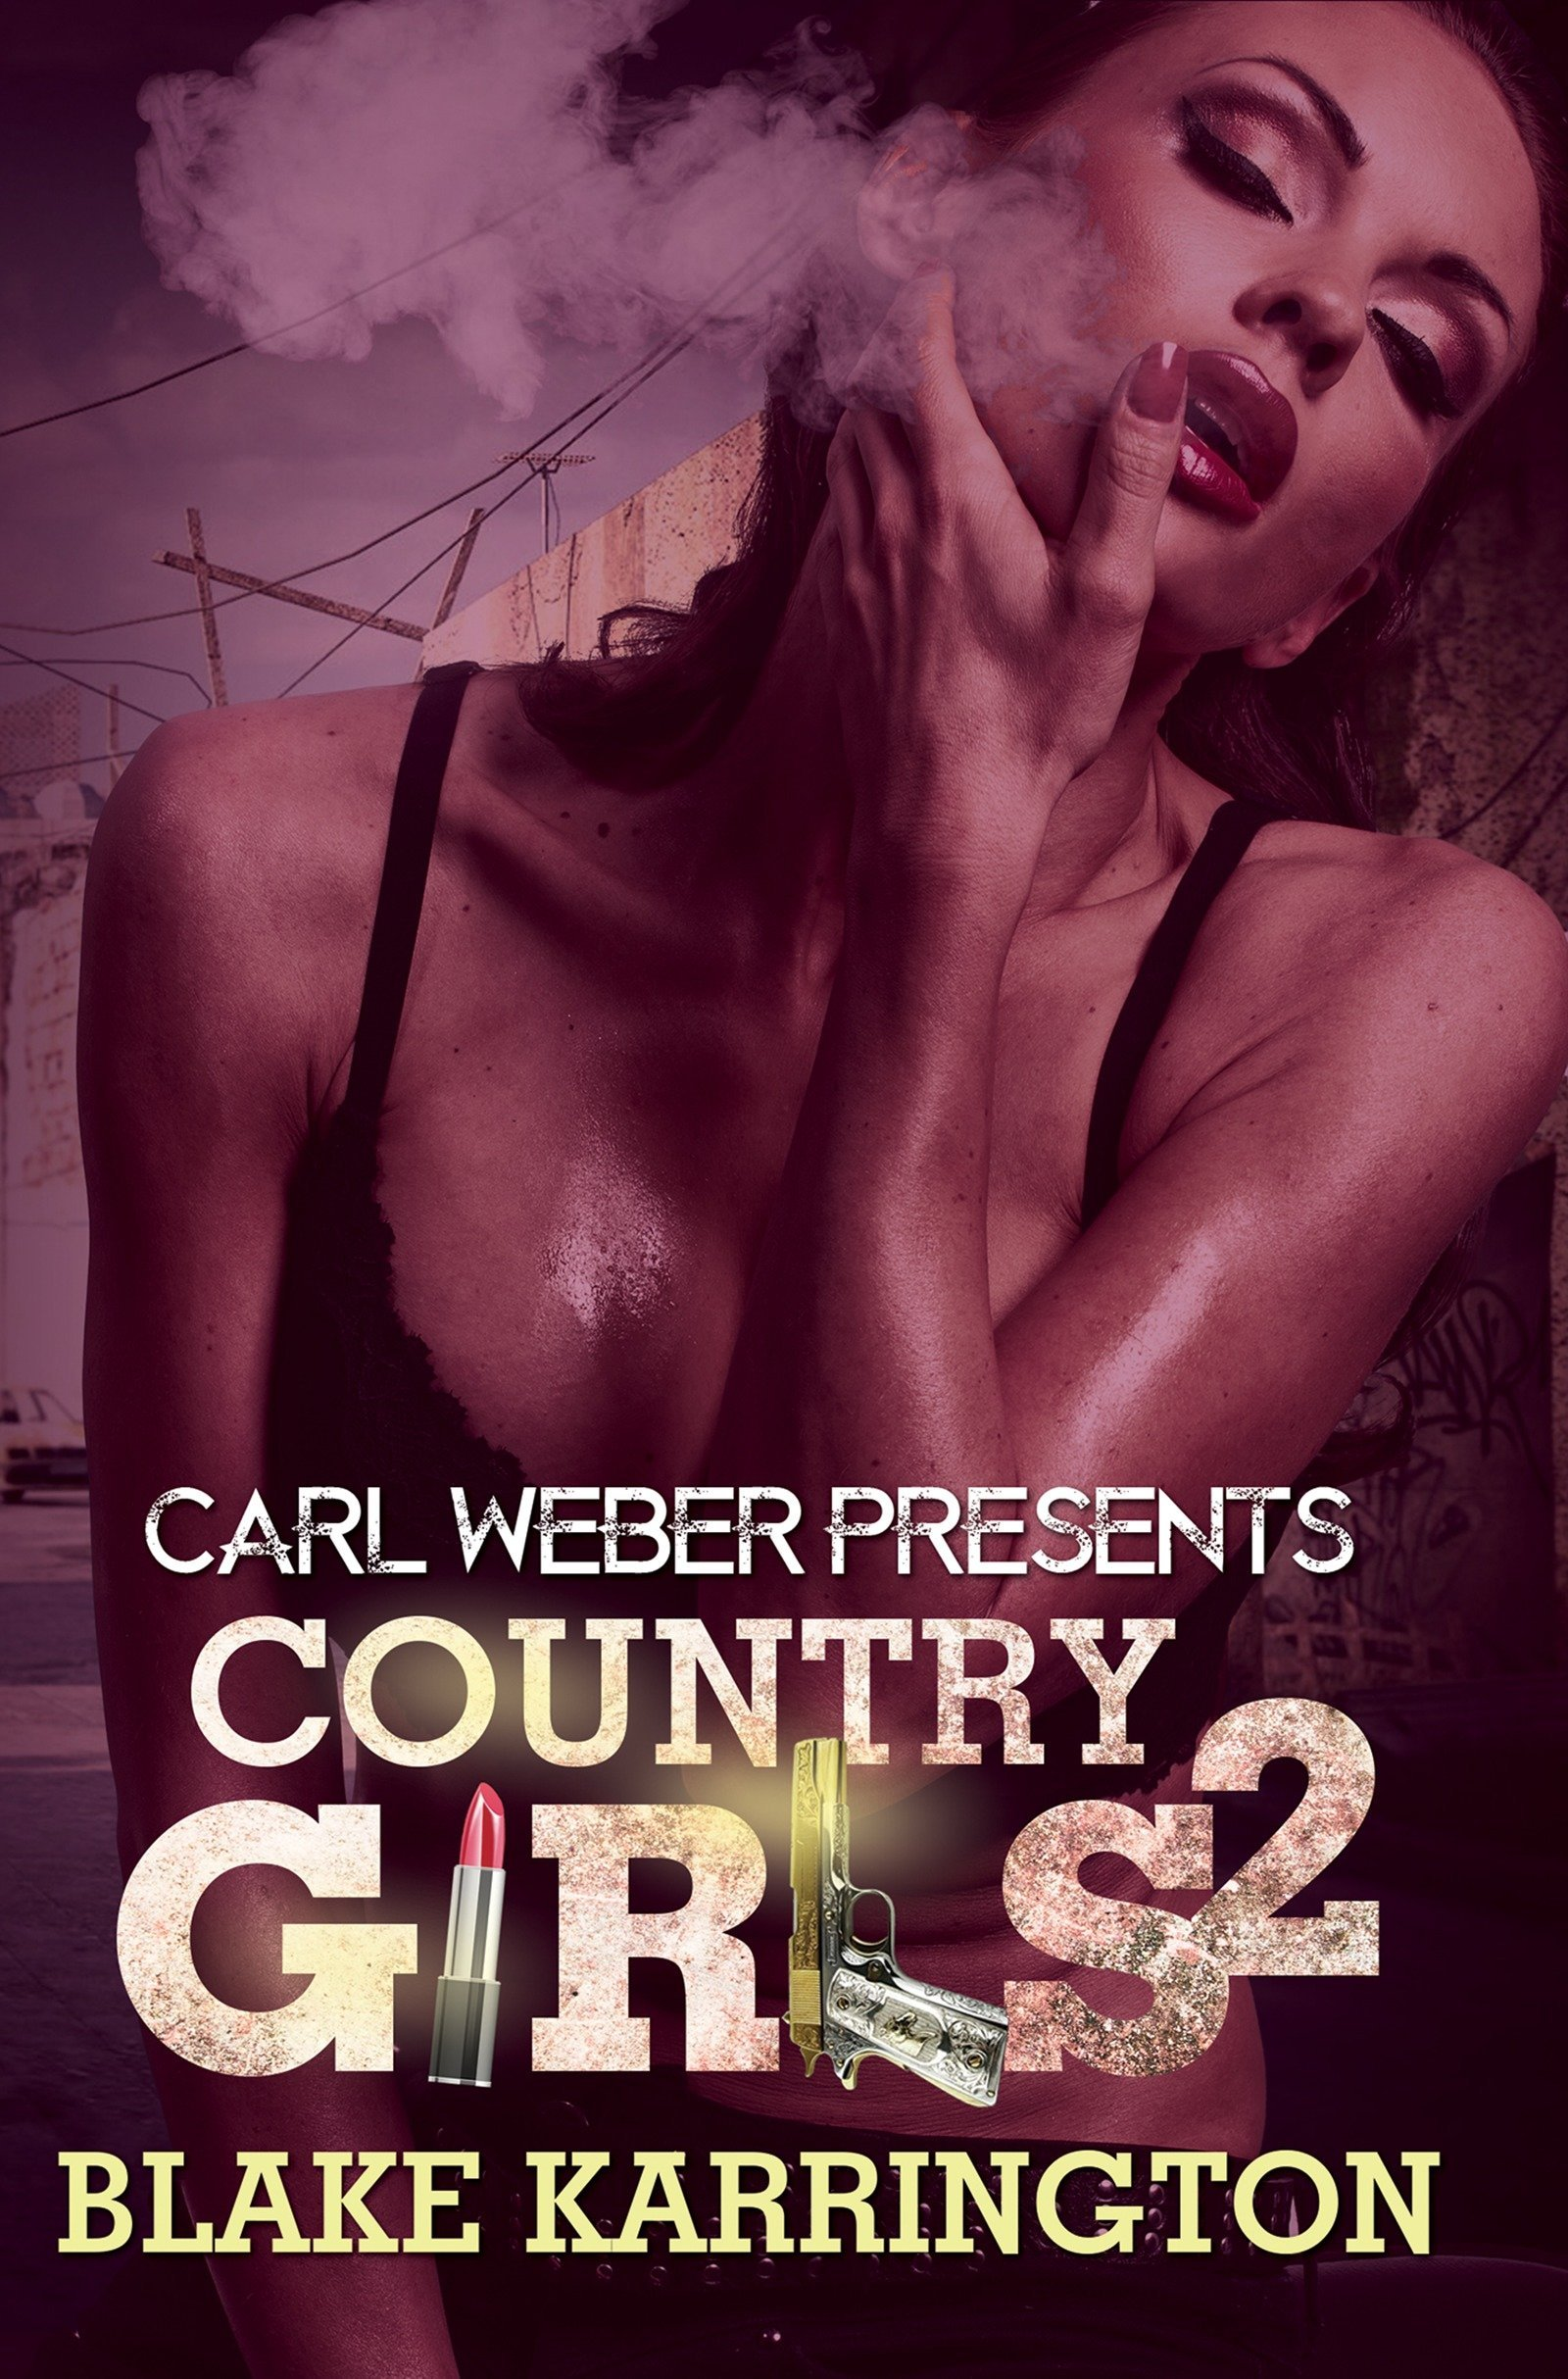 Download Country Girls 2: Carl Weber Presents pdf